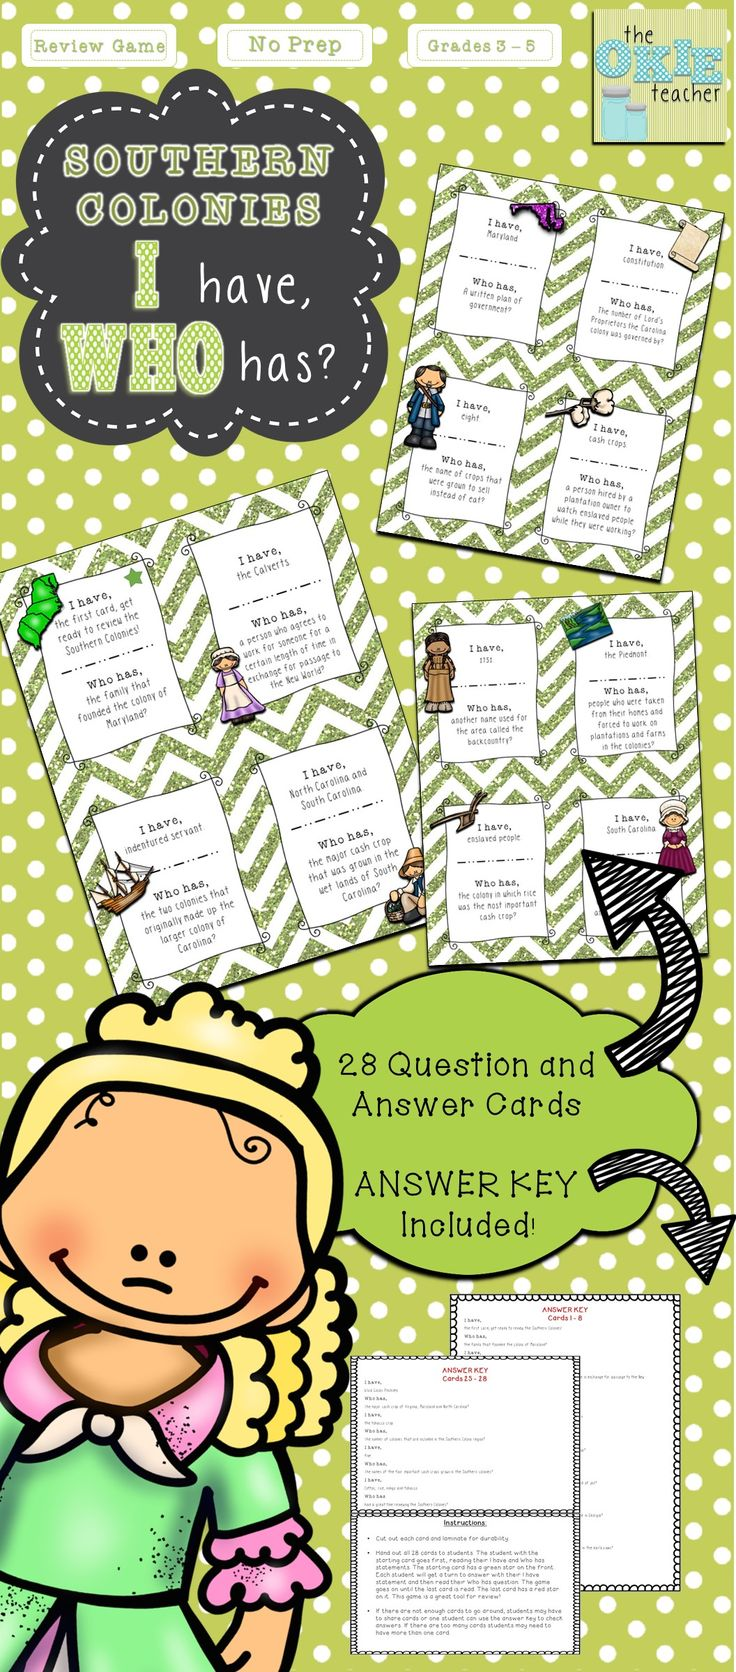 Southern Colonies   Southern colonies, Literacy activities ...